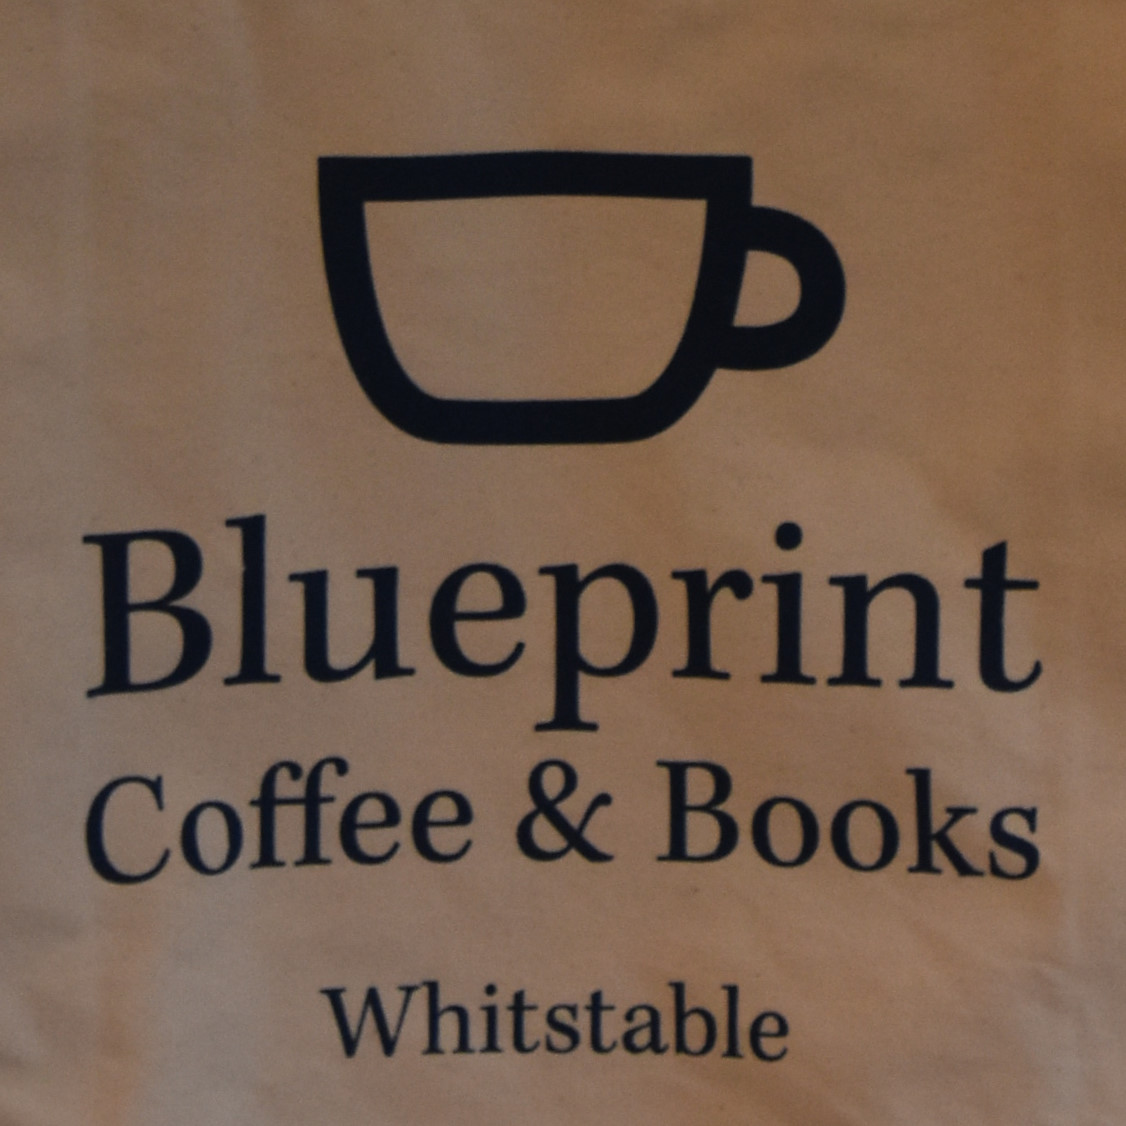 The Blueprint Coffee & Books logo taken from a tote bag in the shop in Whitstable.